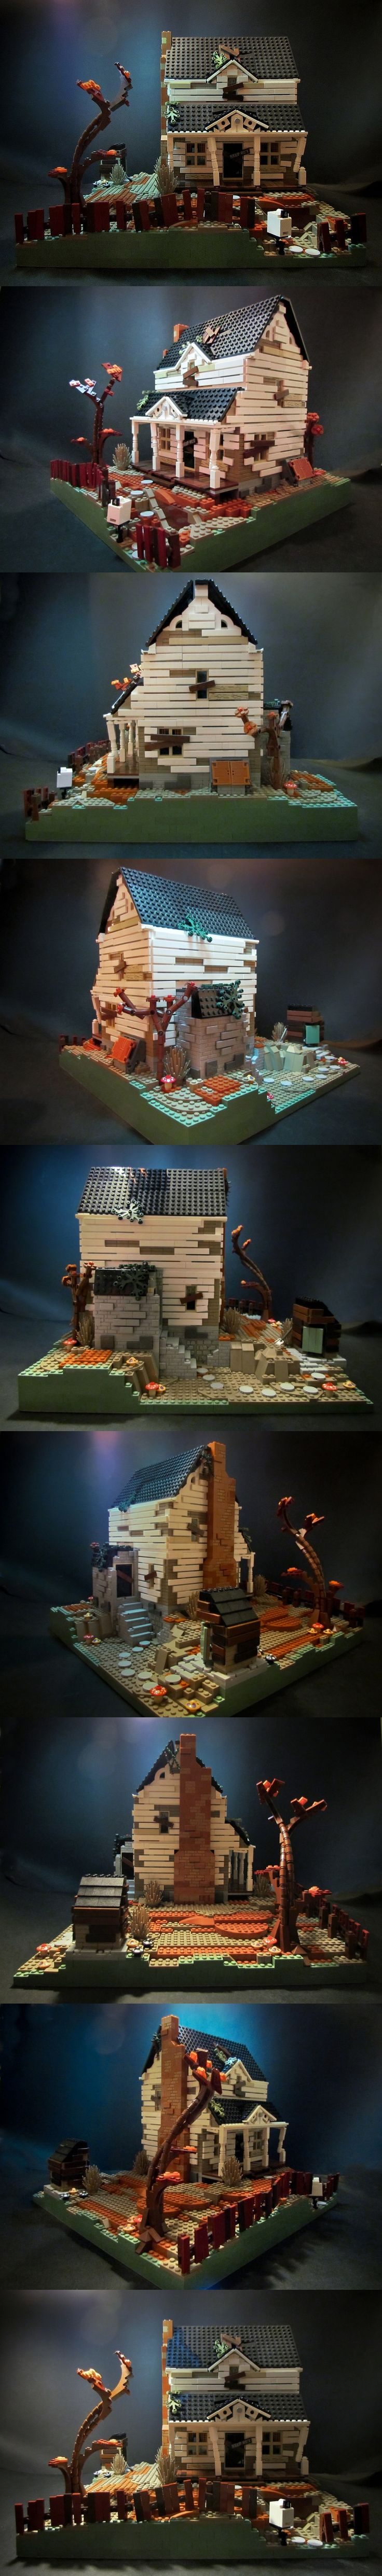 Abandoned House in Lego